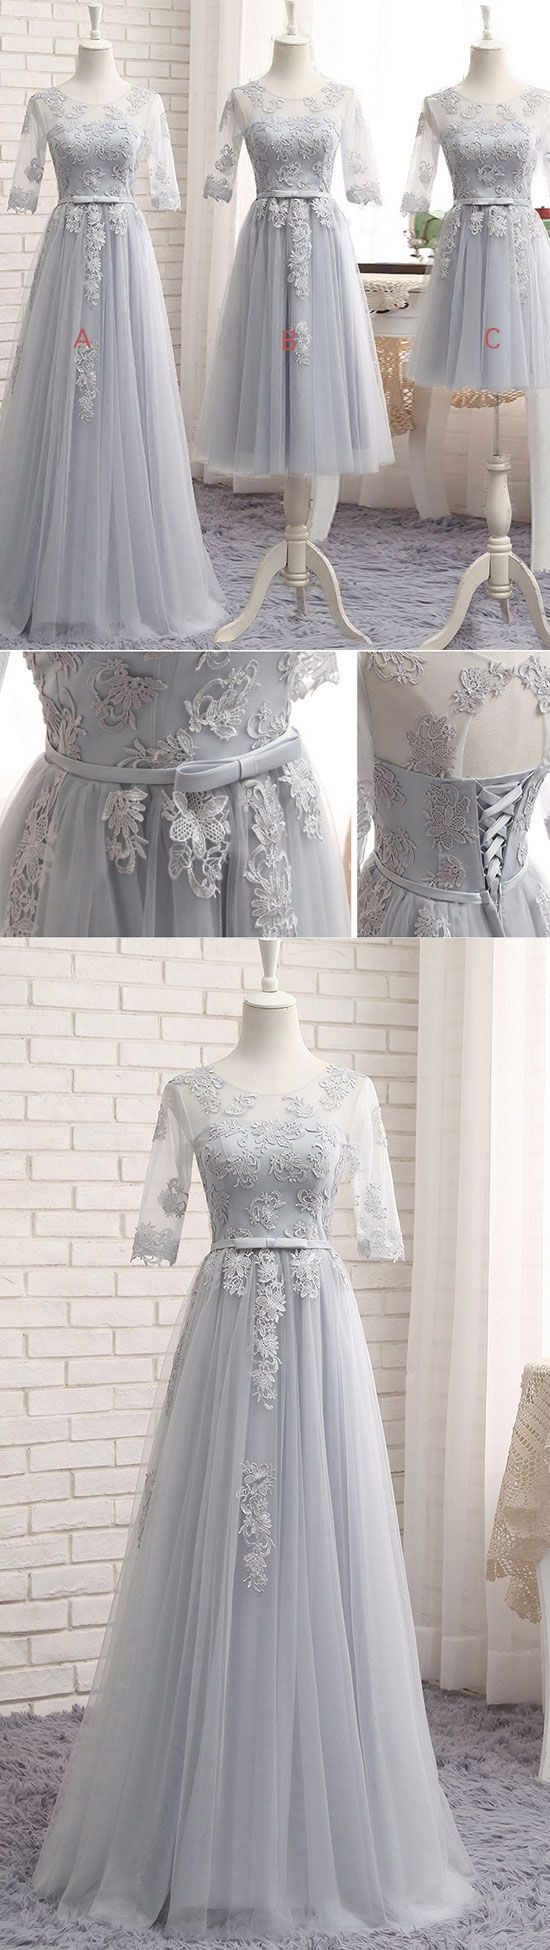 gray tulle lace long prom dress, gray bridesmaid dress, gray tulle lace long wedding party dress